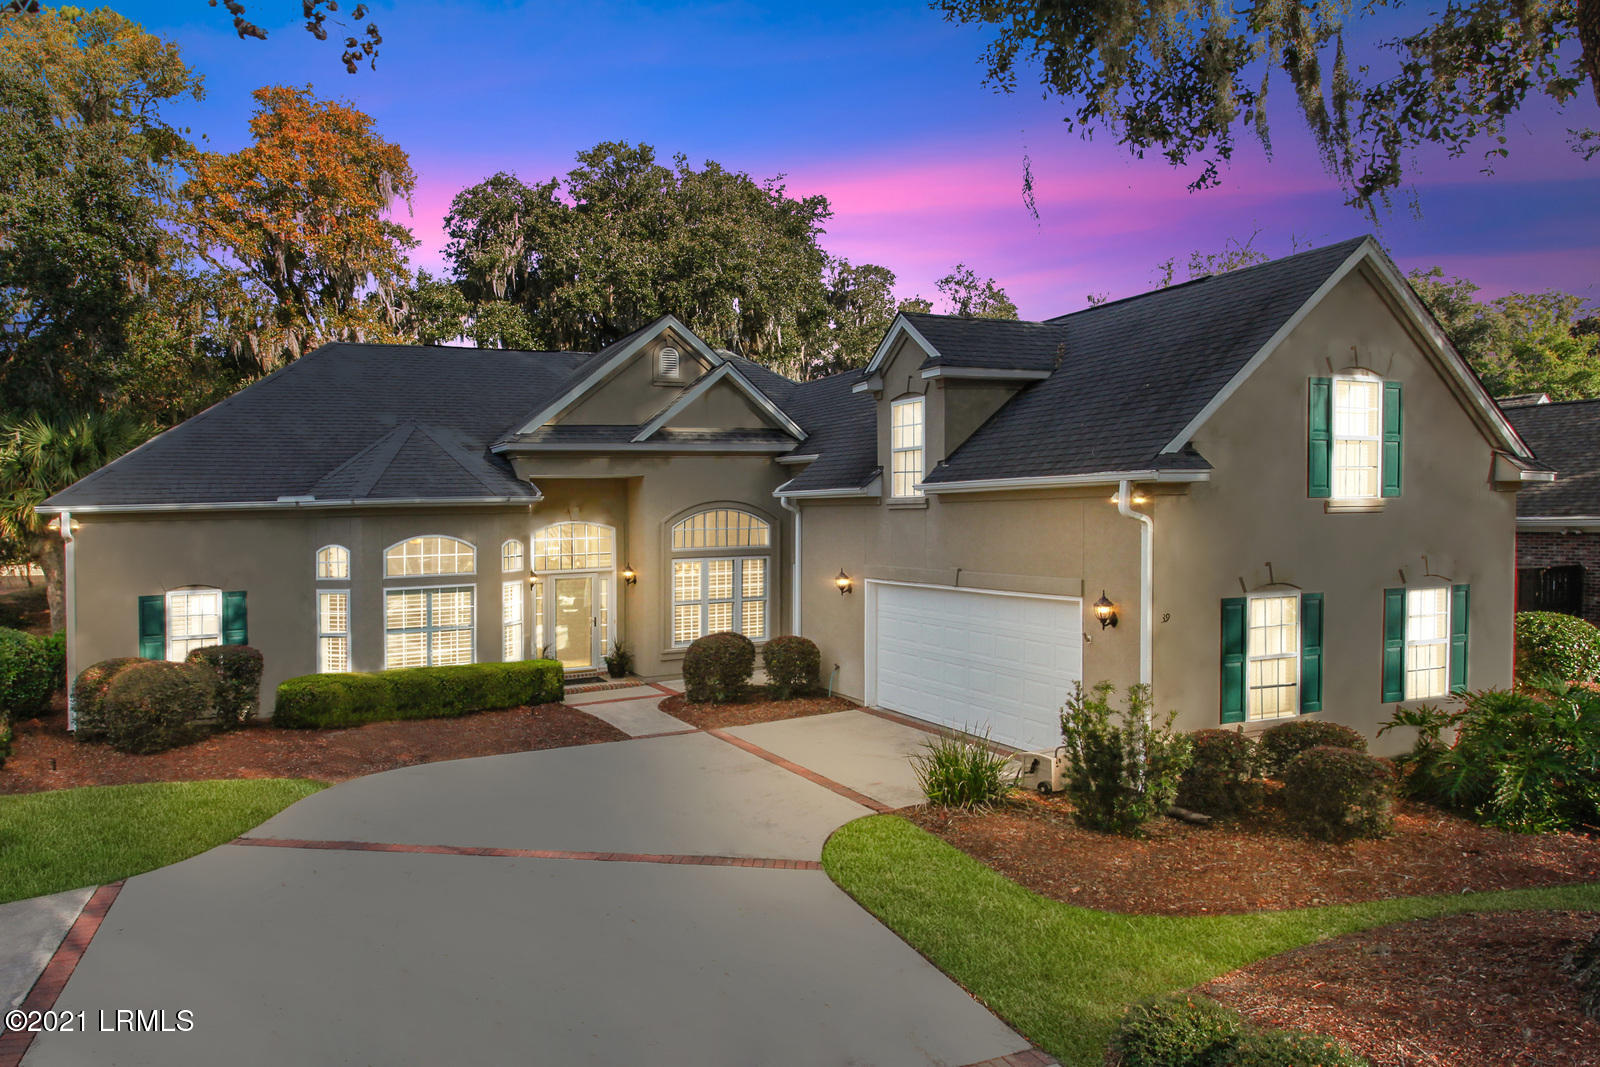 Photo of 39 Victory Point Drive, Bluffton, SC 29910